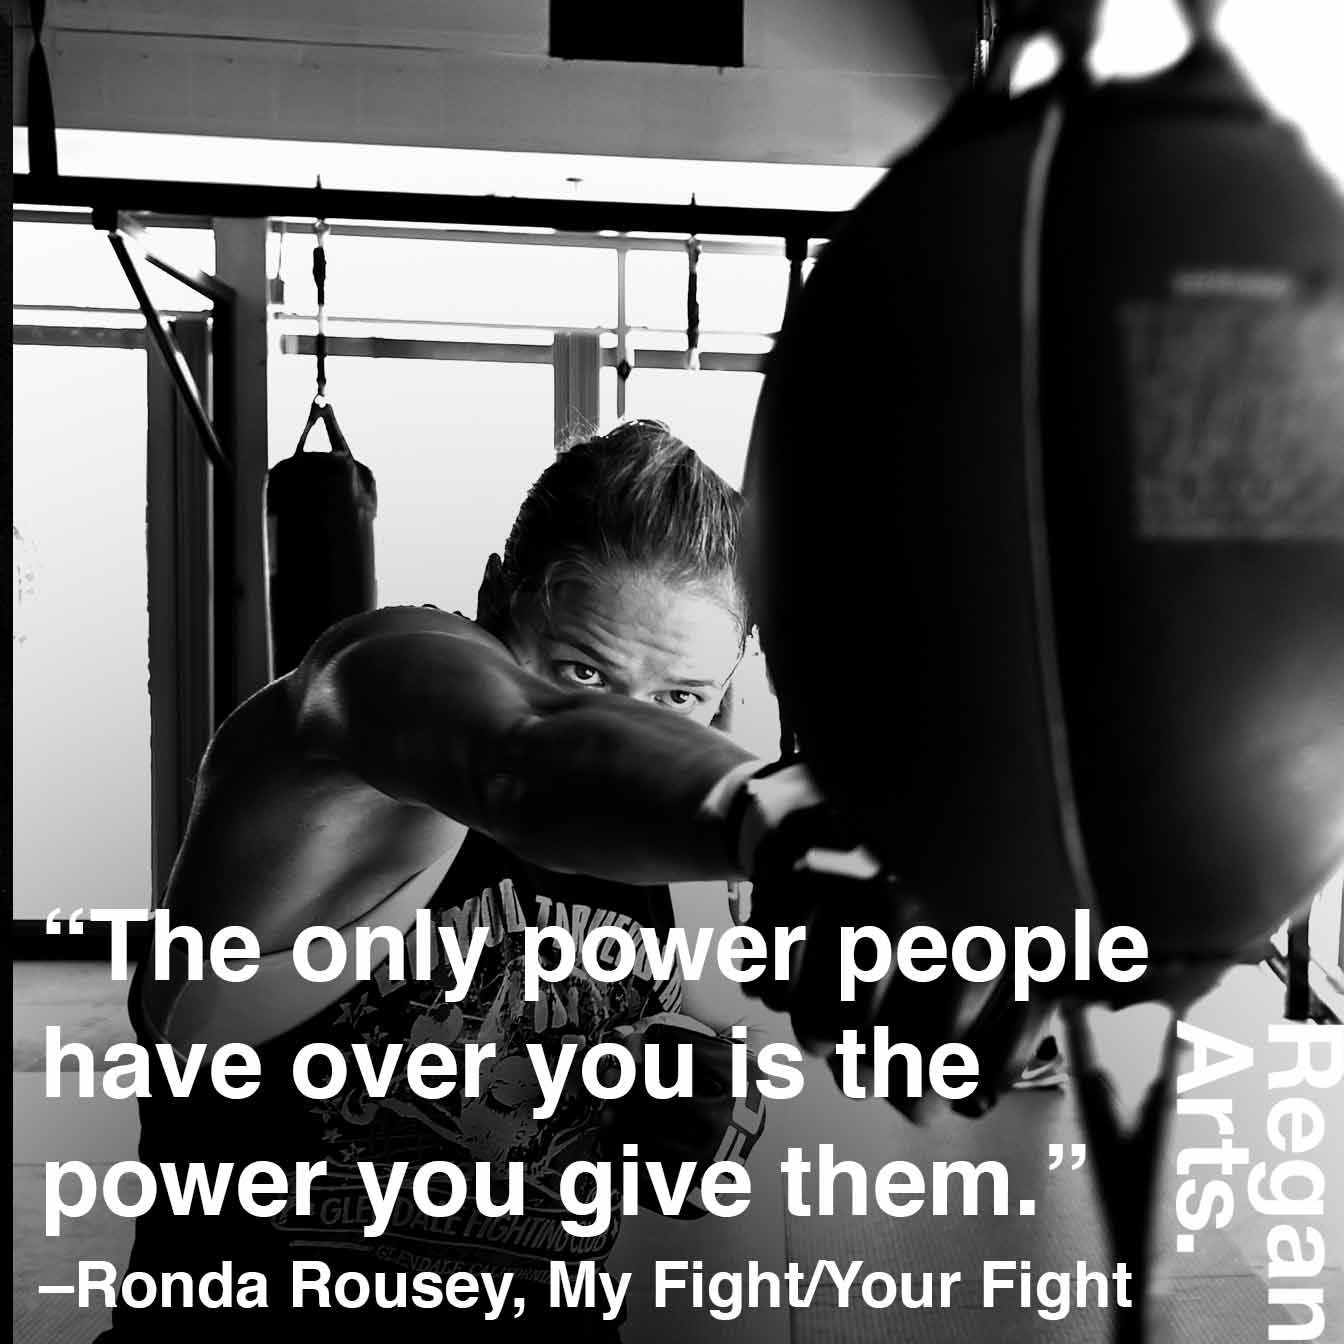 the only power people have over you is the power you give them, ronda rousey